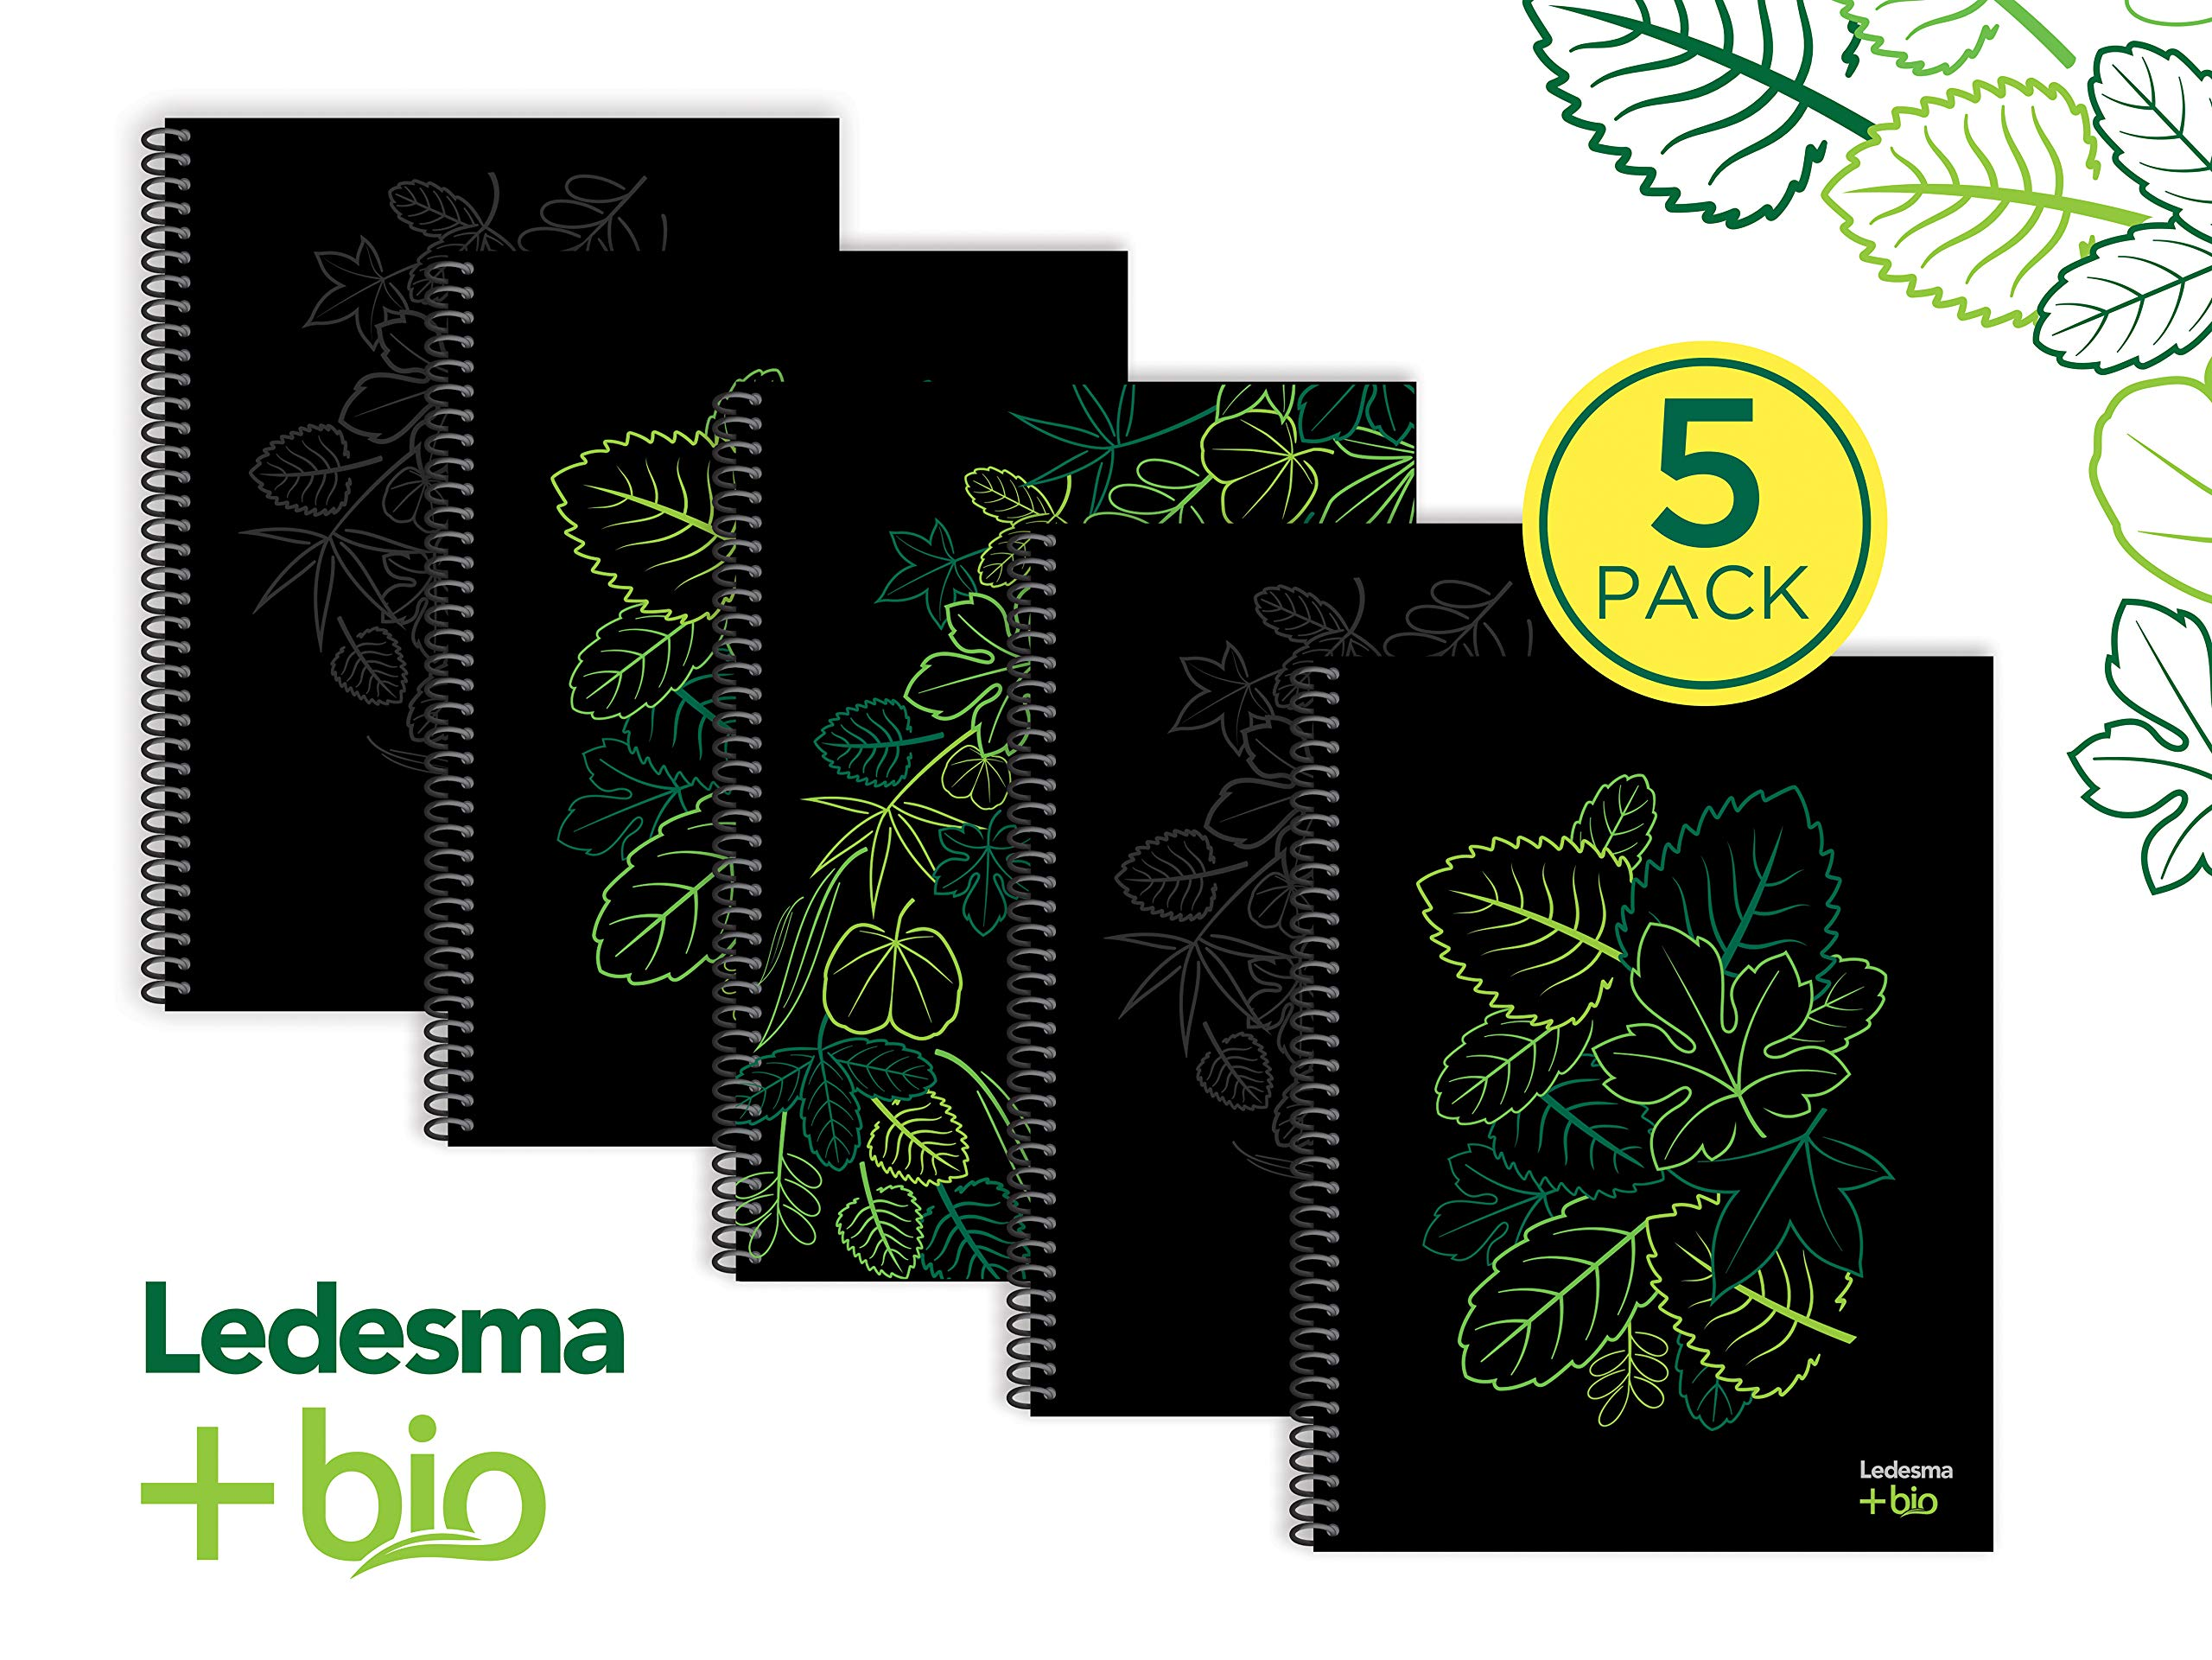 LEDESMA +BIO ECO NOTEBOOK, SUSTAINABLE, 100% SUGARCANE, BIOPLASTIC HARD COVER, NATURAL COLOR PAPER, 84 SHEETS, 8,5 X 11, PLAIN, PACK OF 5 NOTEBOOKS